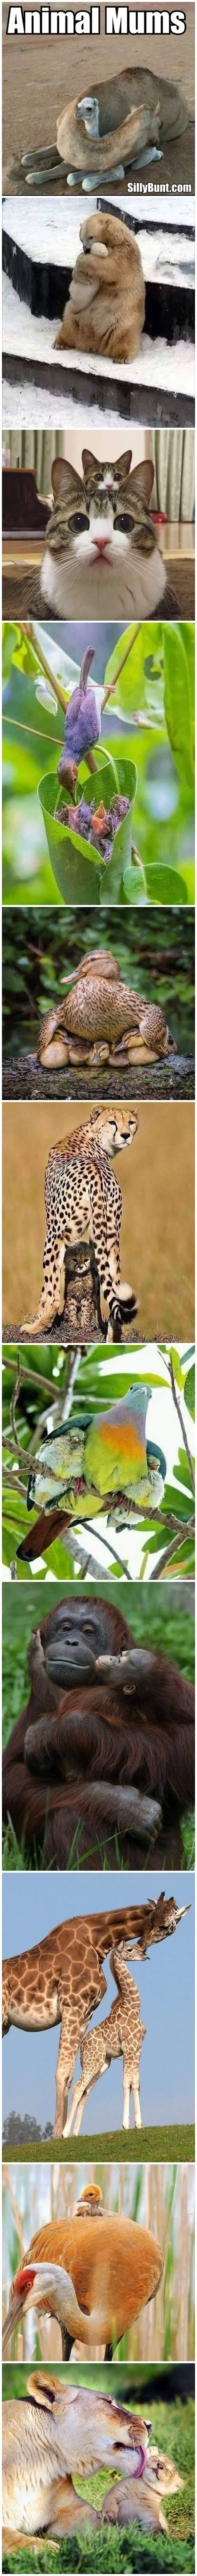 Funny Animal Mums Picture Collection